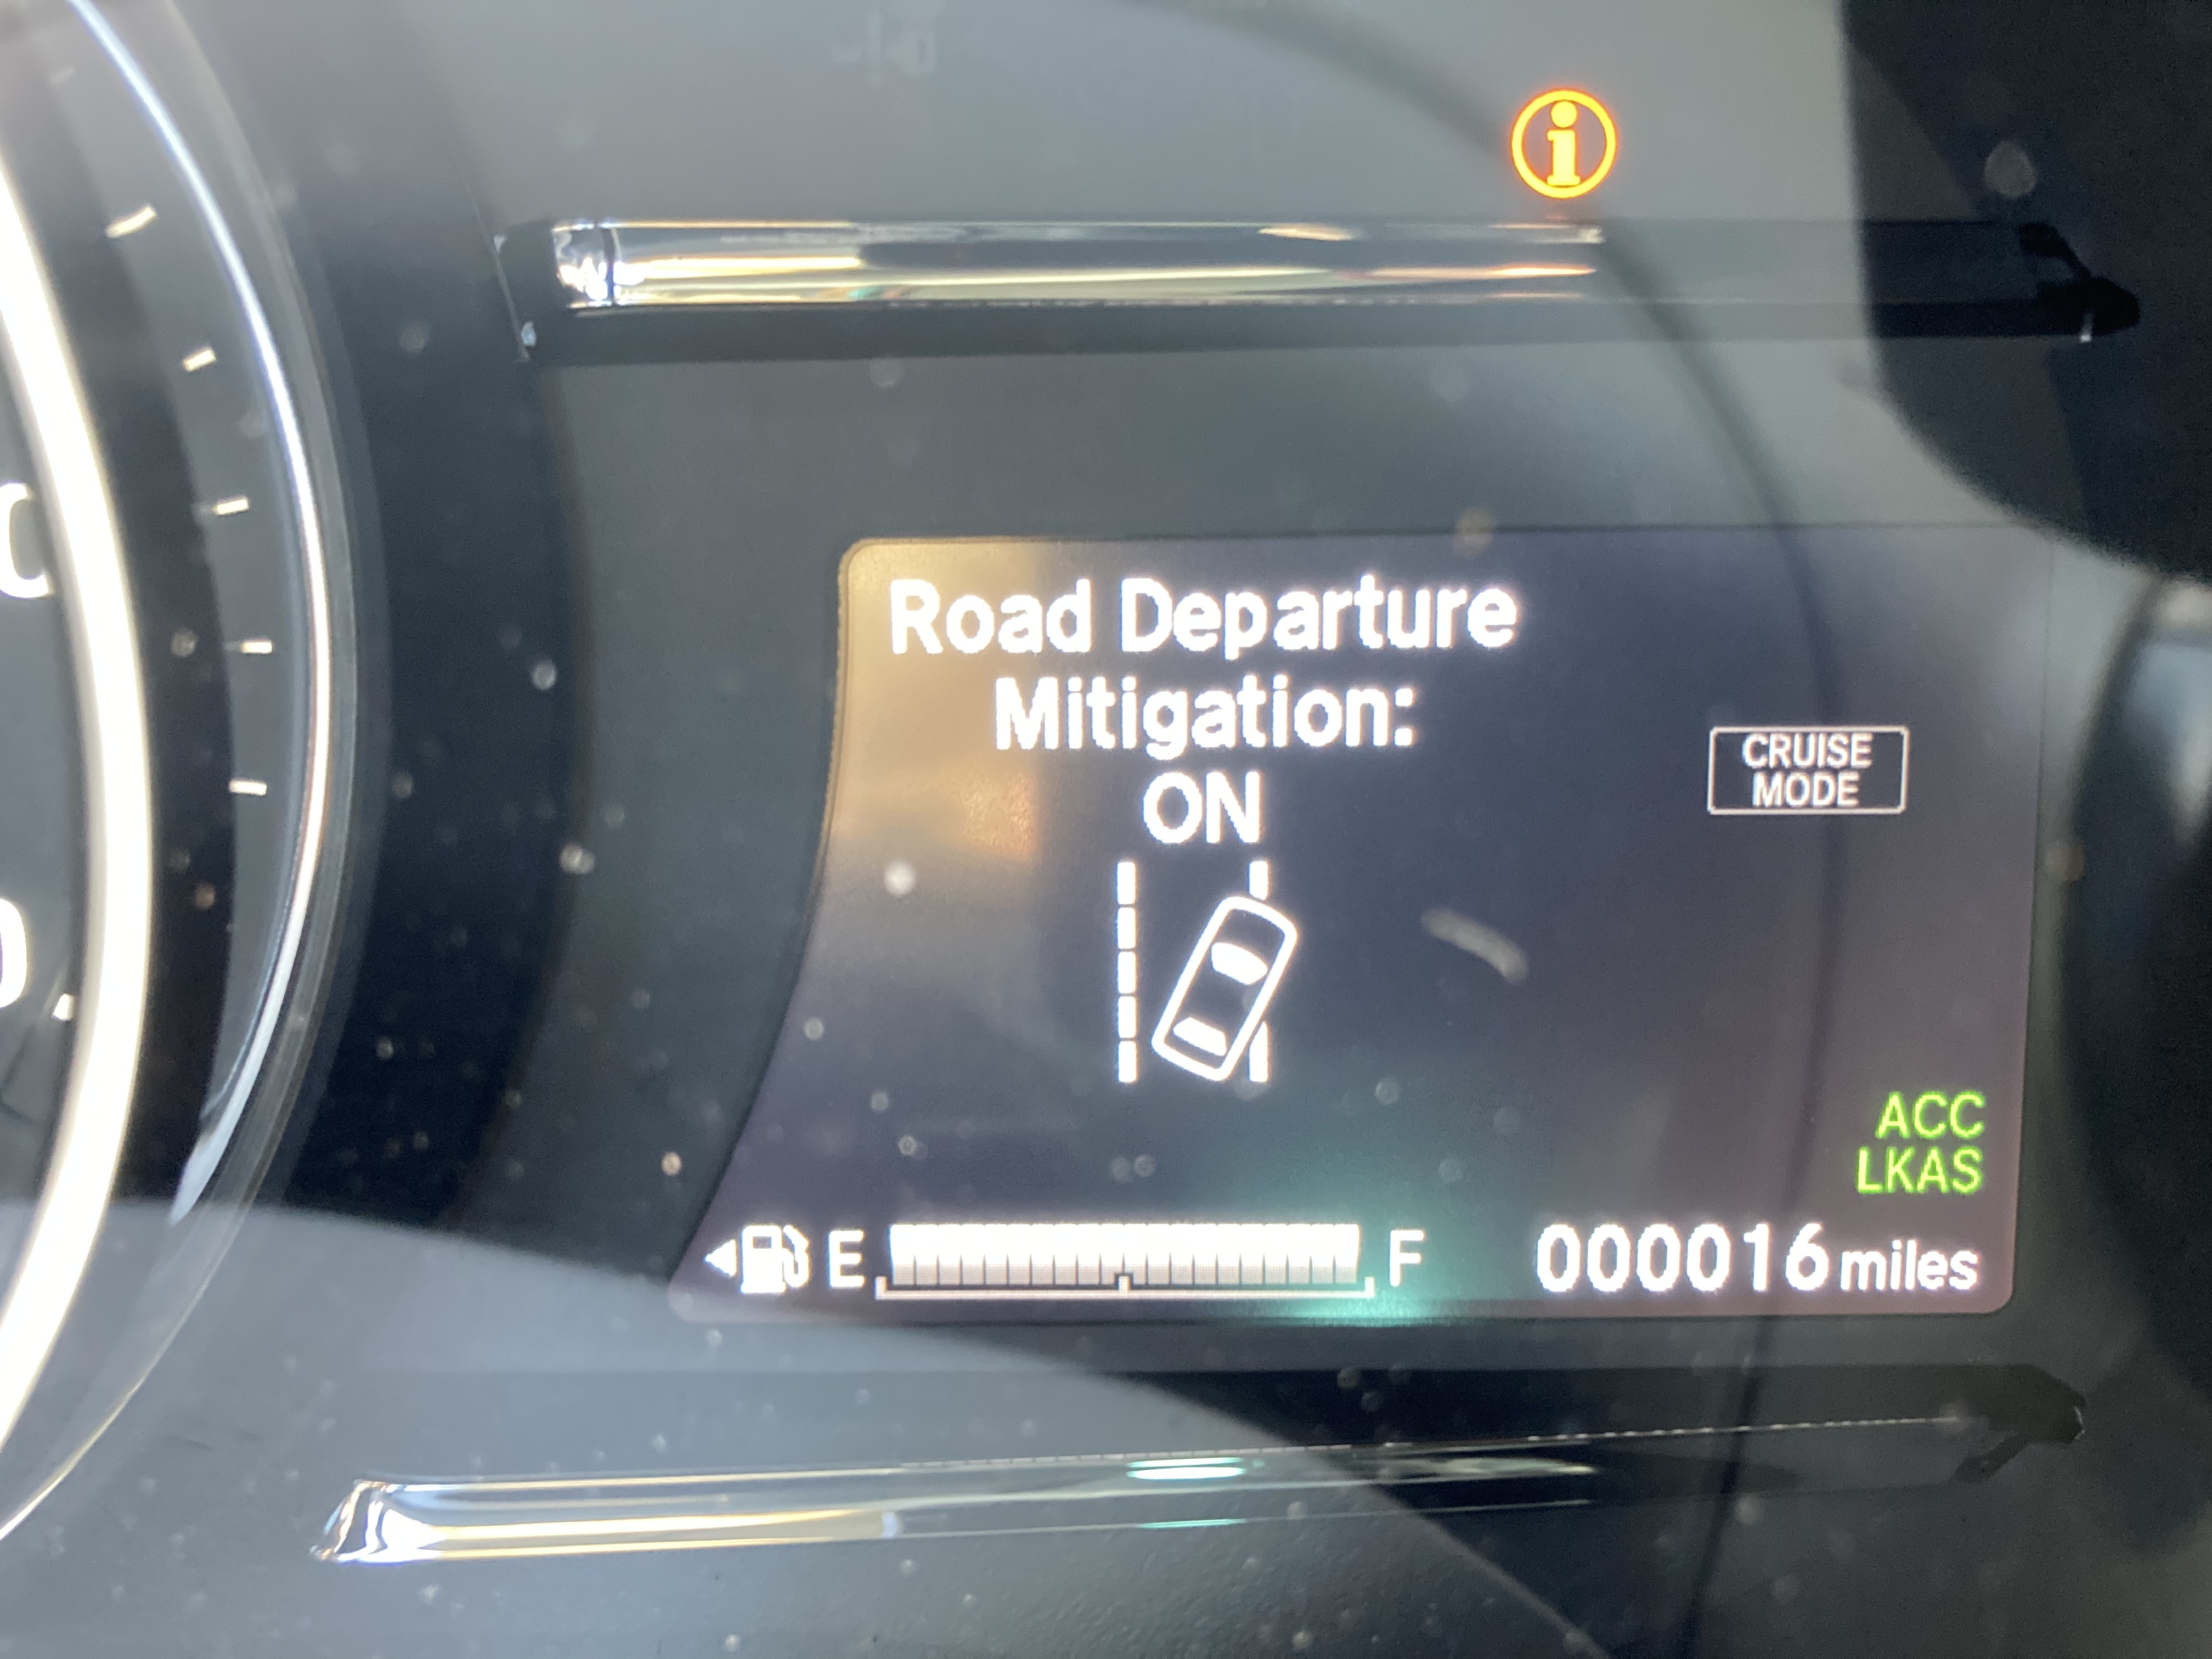 Car display with Road Departure Mitigation: On displayed and odometer reading 00016 miles.